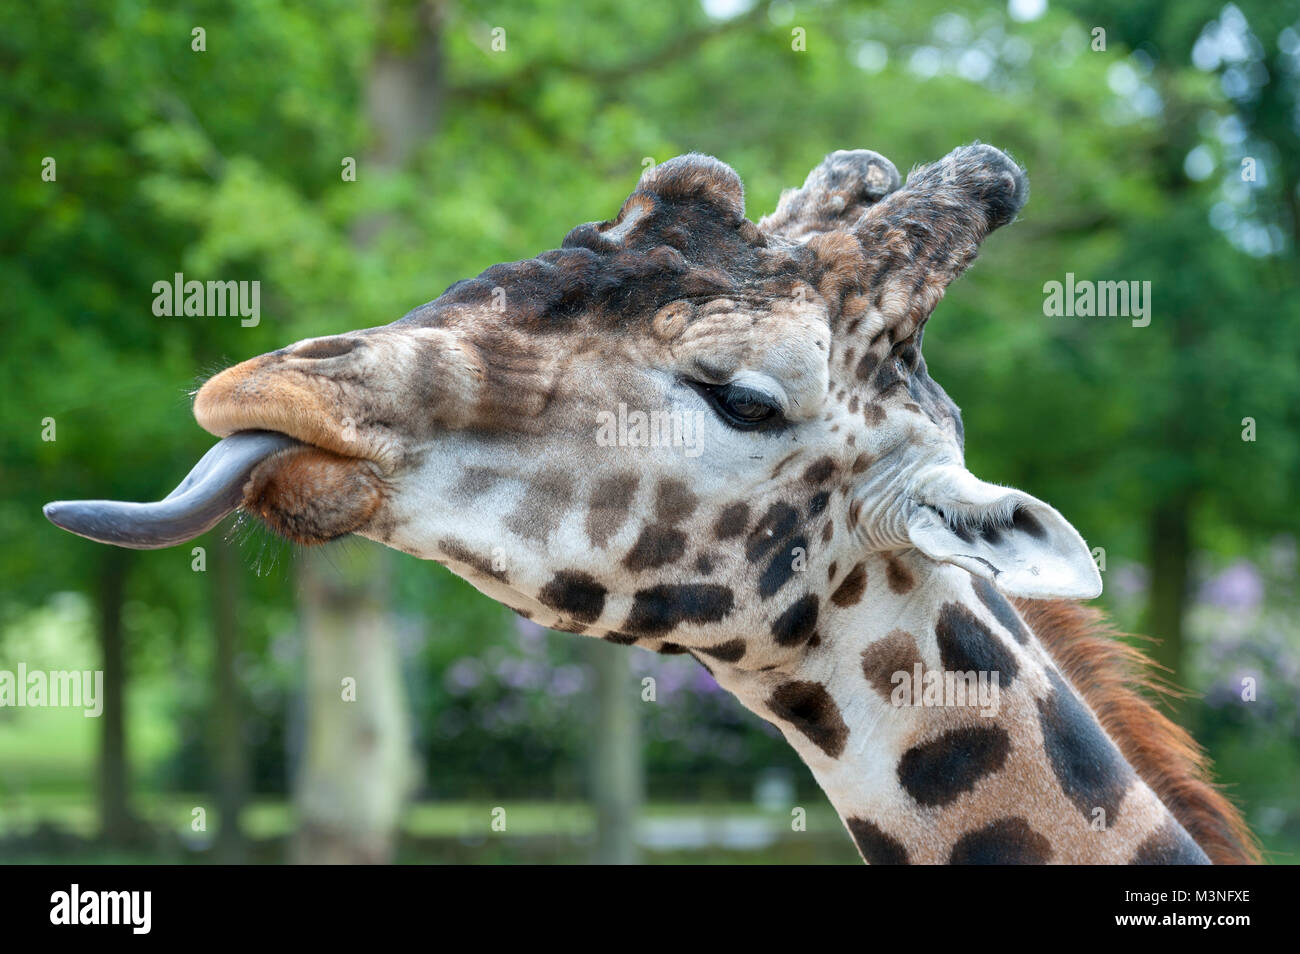 Close up of a giraffe  the tallest living terrestrial animal out stretches its tounge to feed - Stock Image